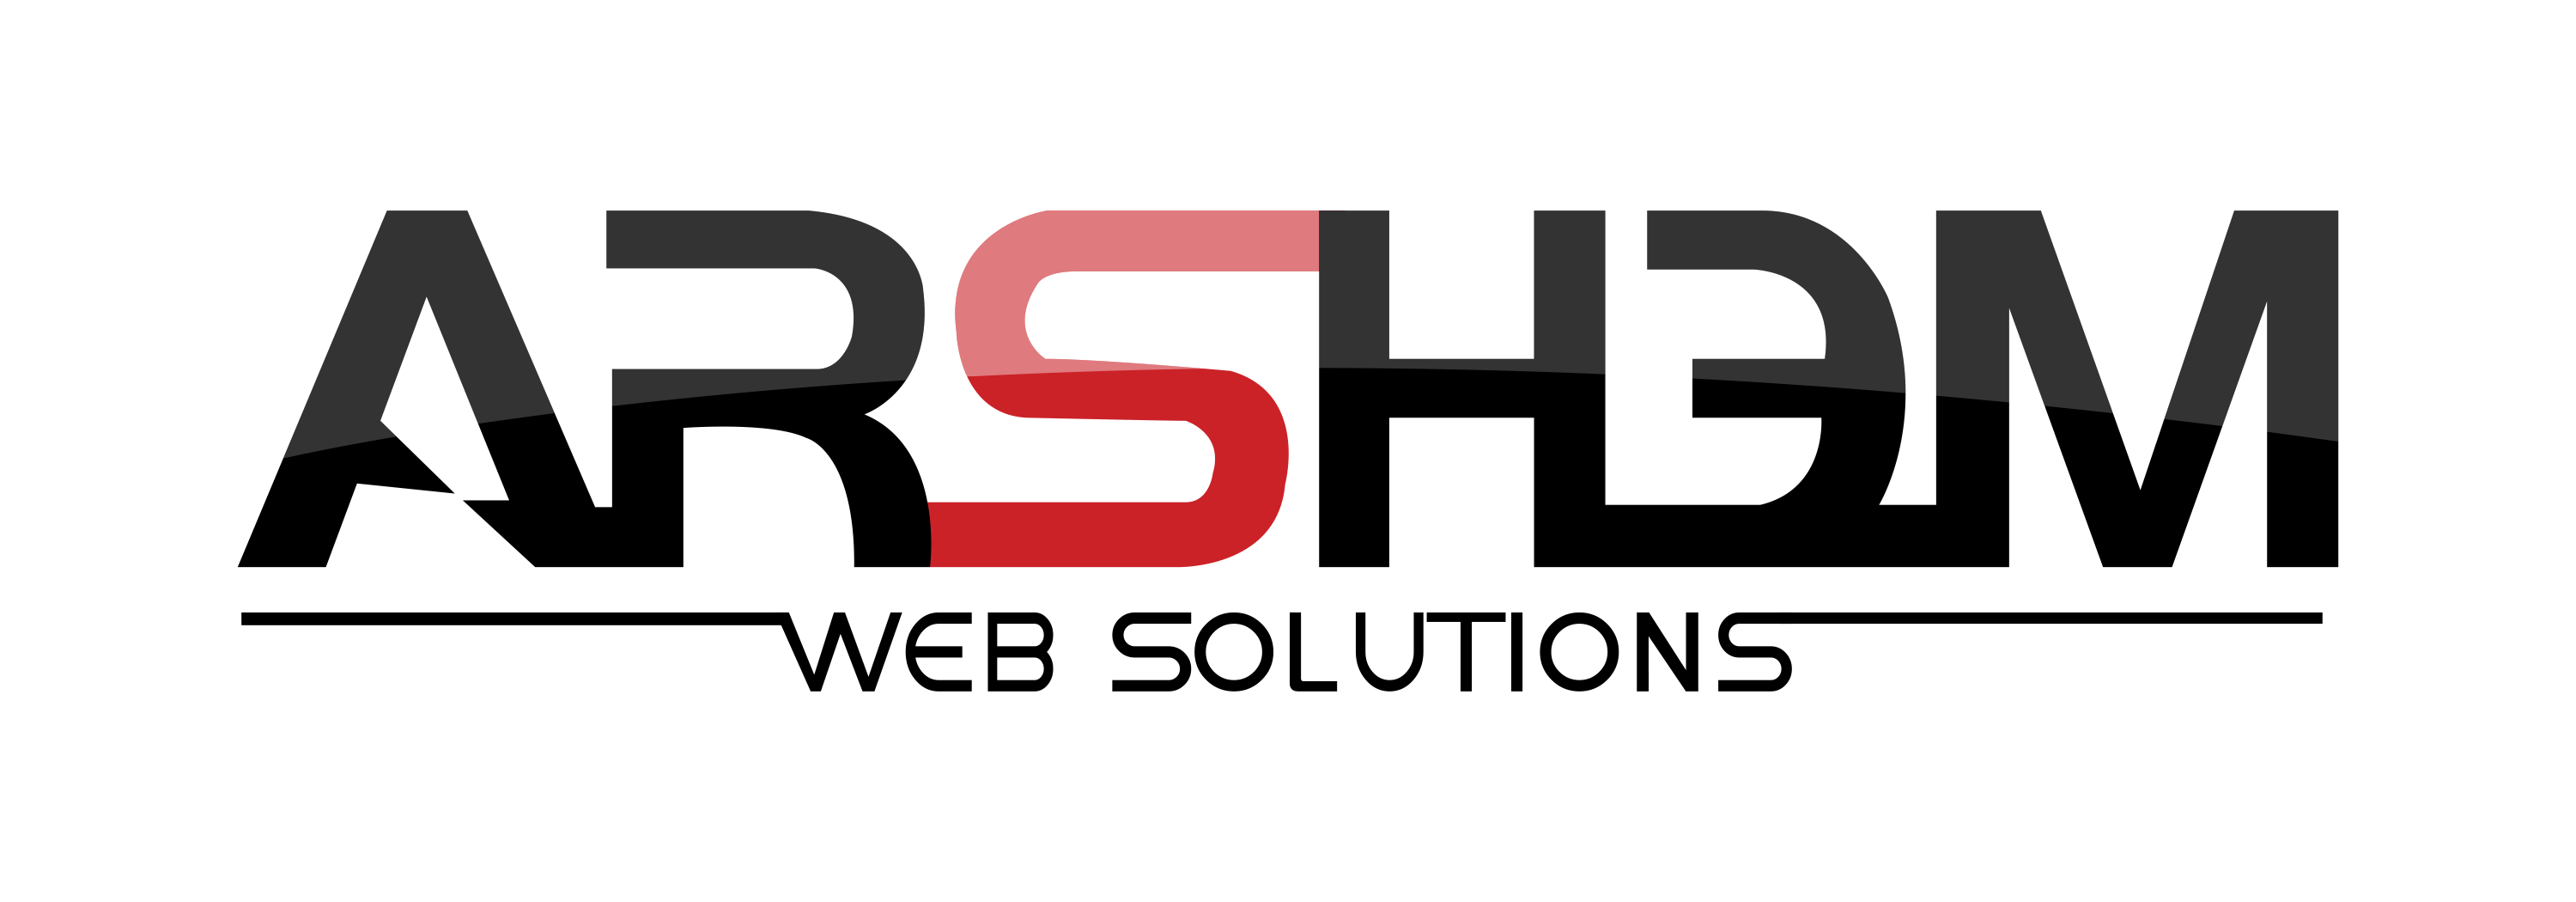 arshem_web_solutions